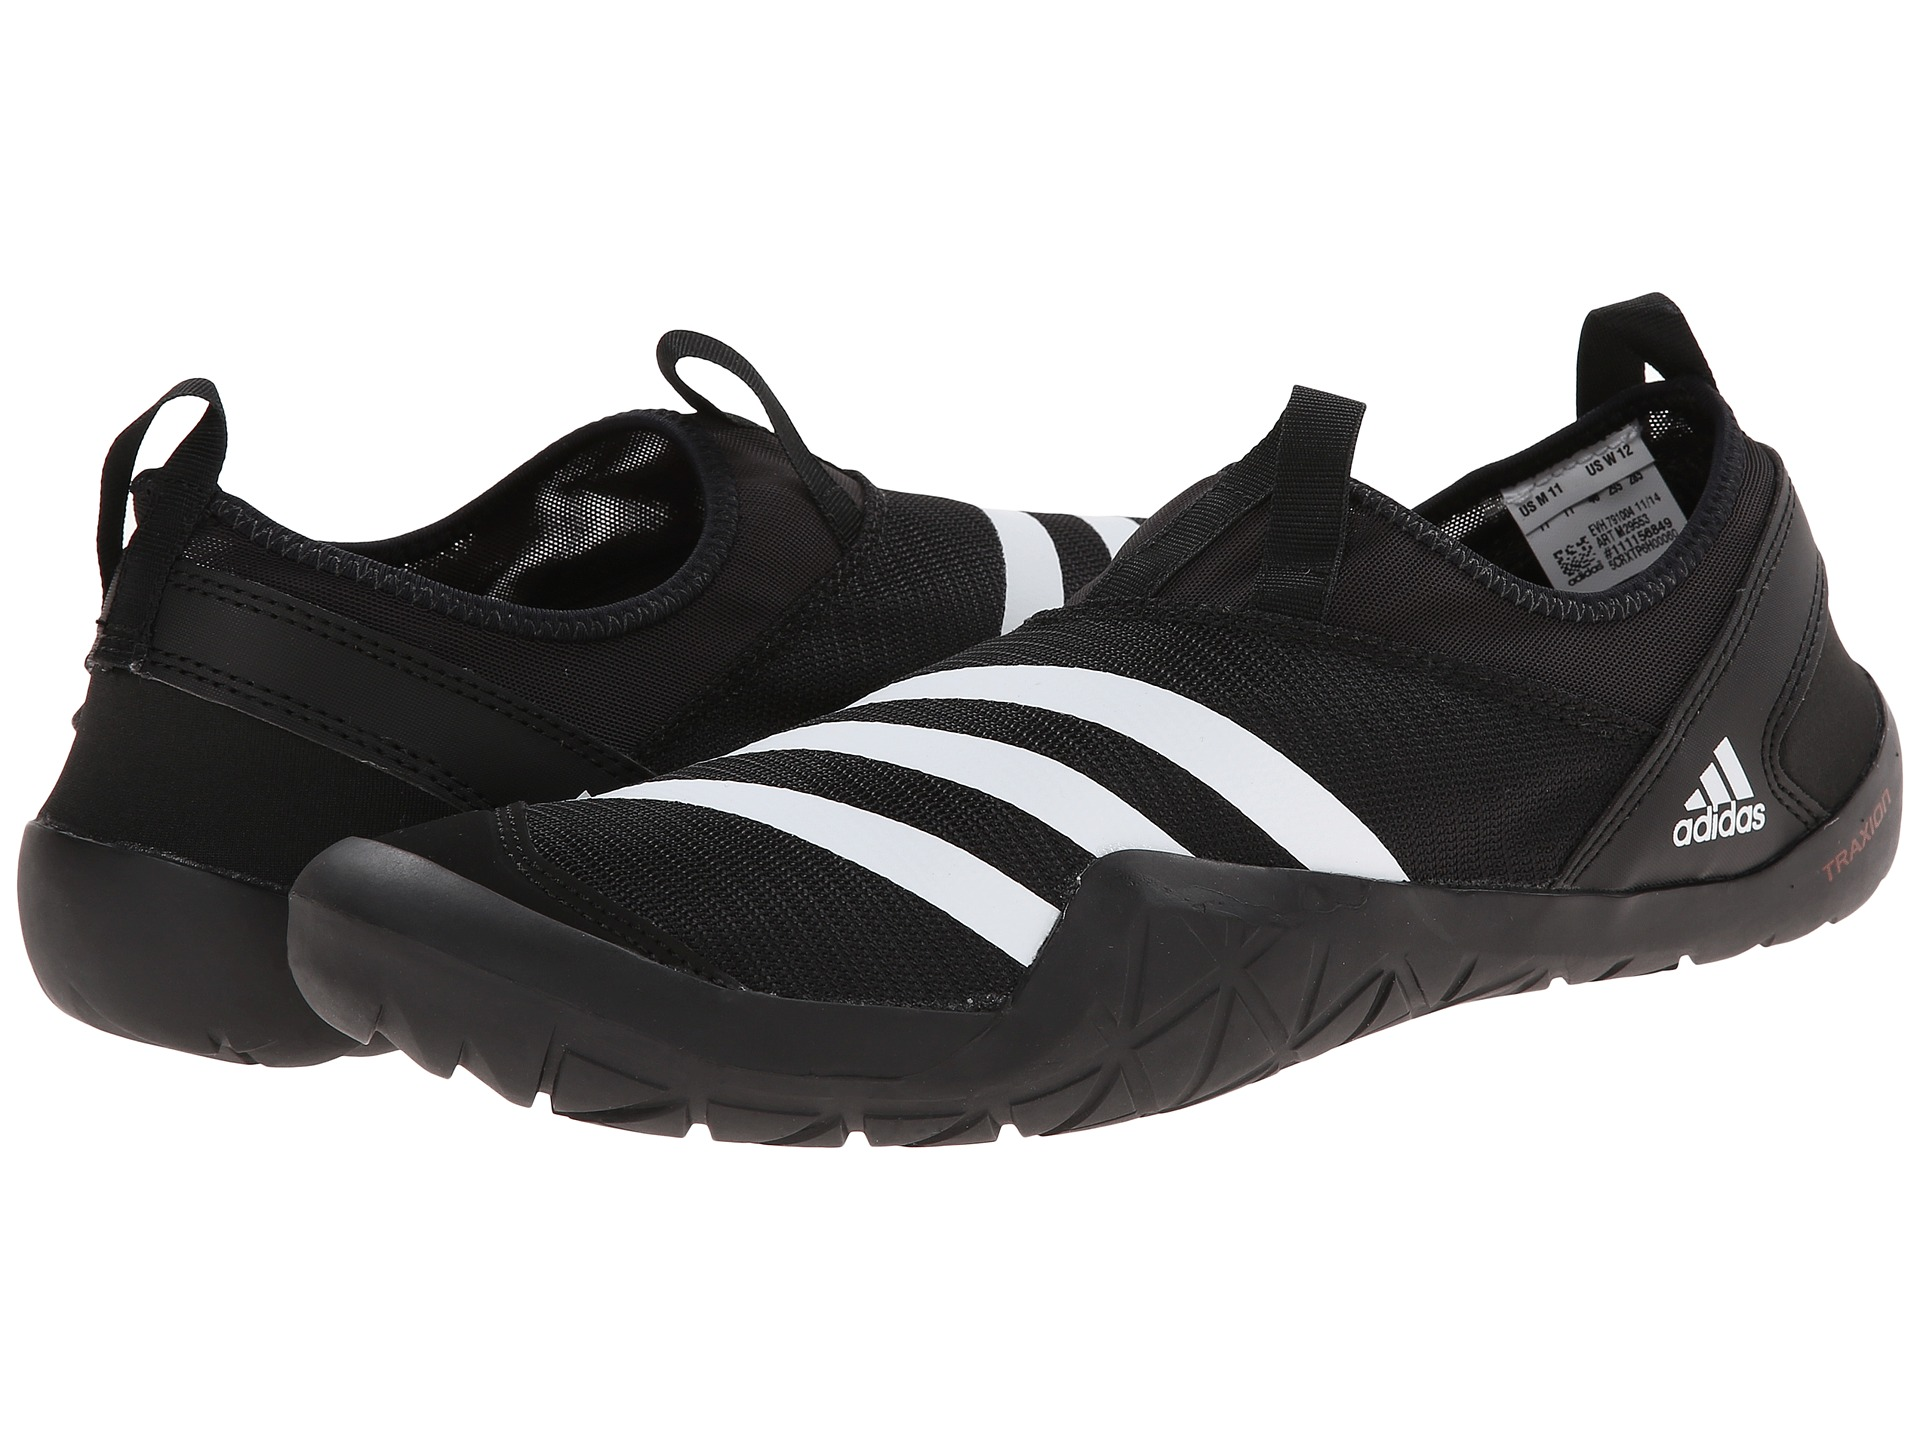 Adidas Climacool Athletic Mens Shoes